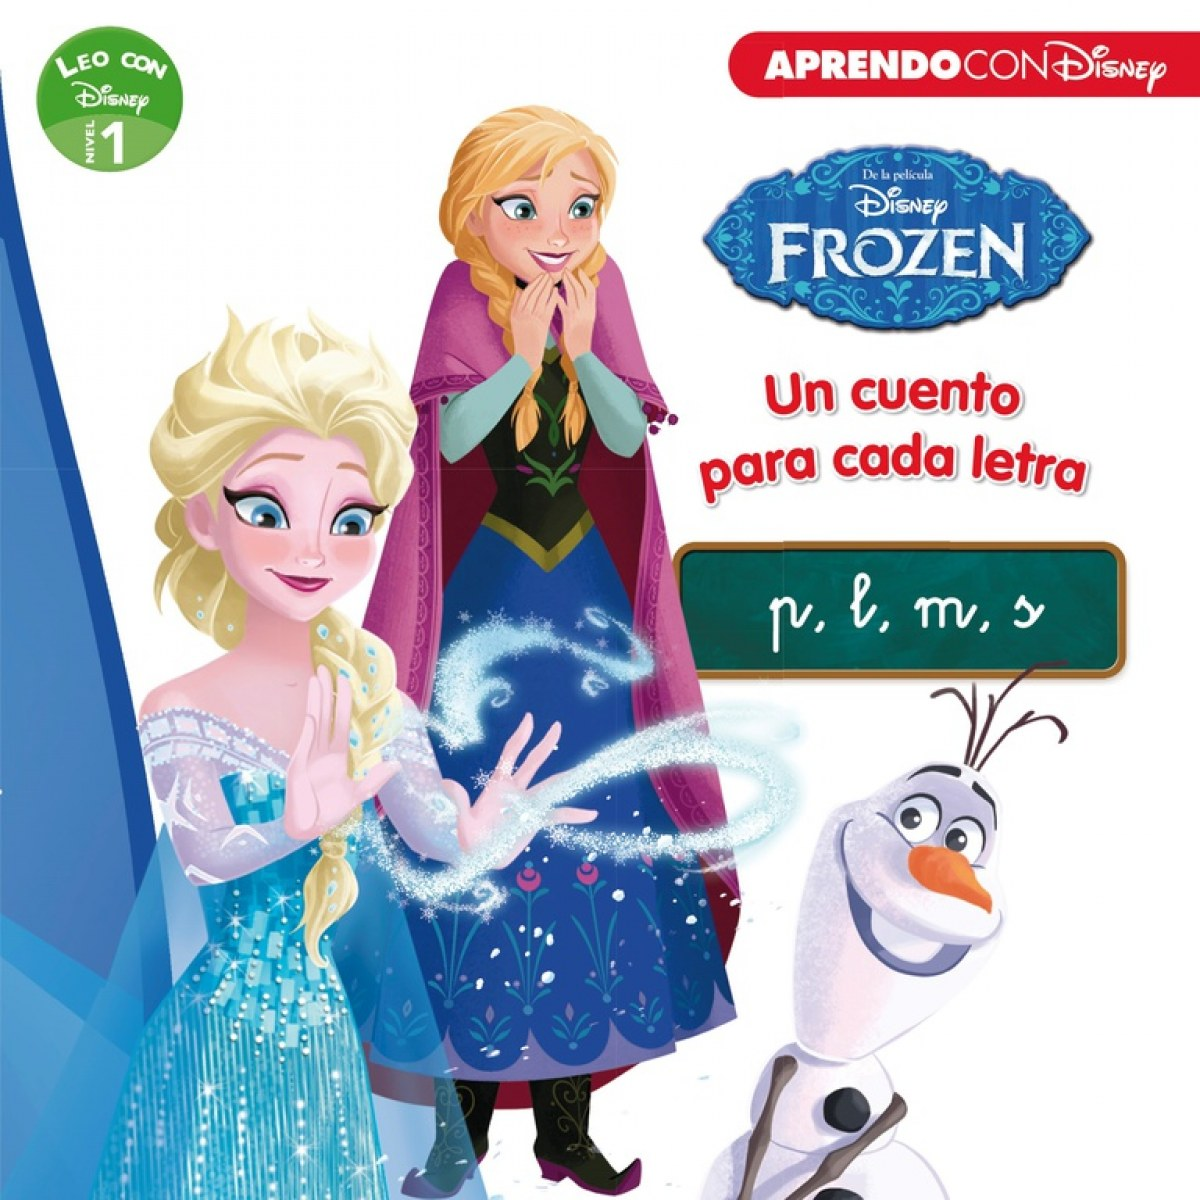 FROZEN. LEO CON DISNEY NIVEL 1